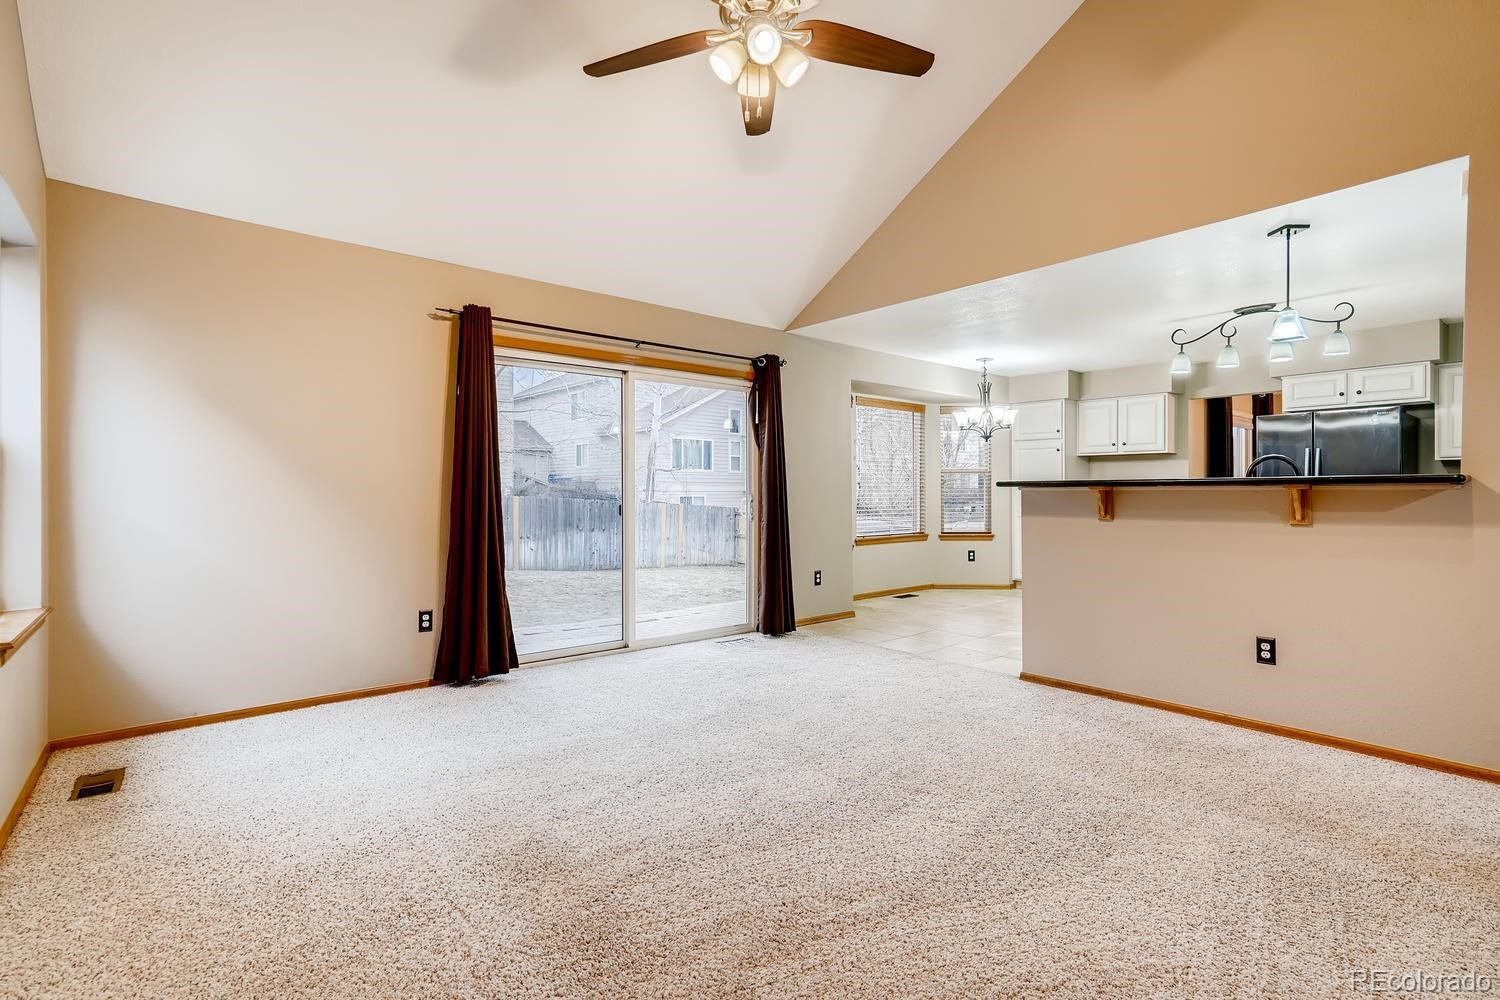 MLS# 6431155 - 14 - 6773 W 98th Circle, Westminster, CO 80021